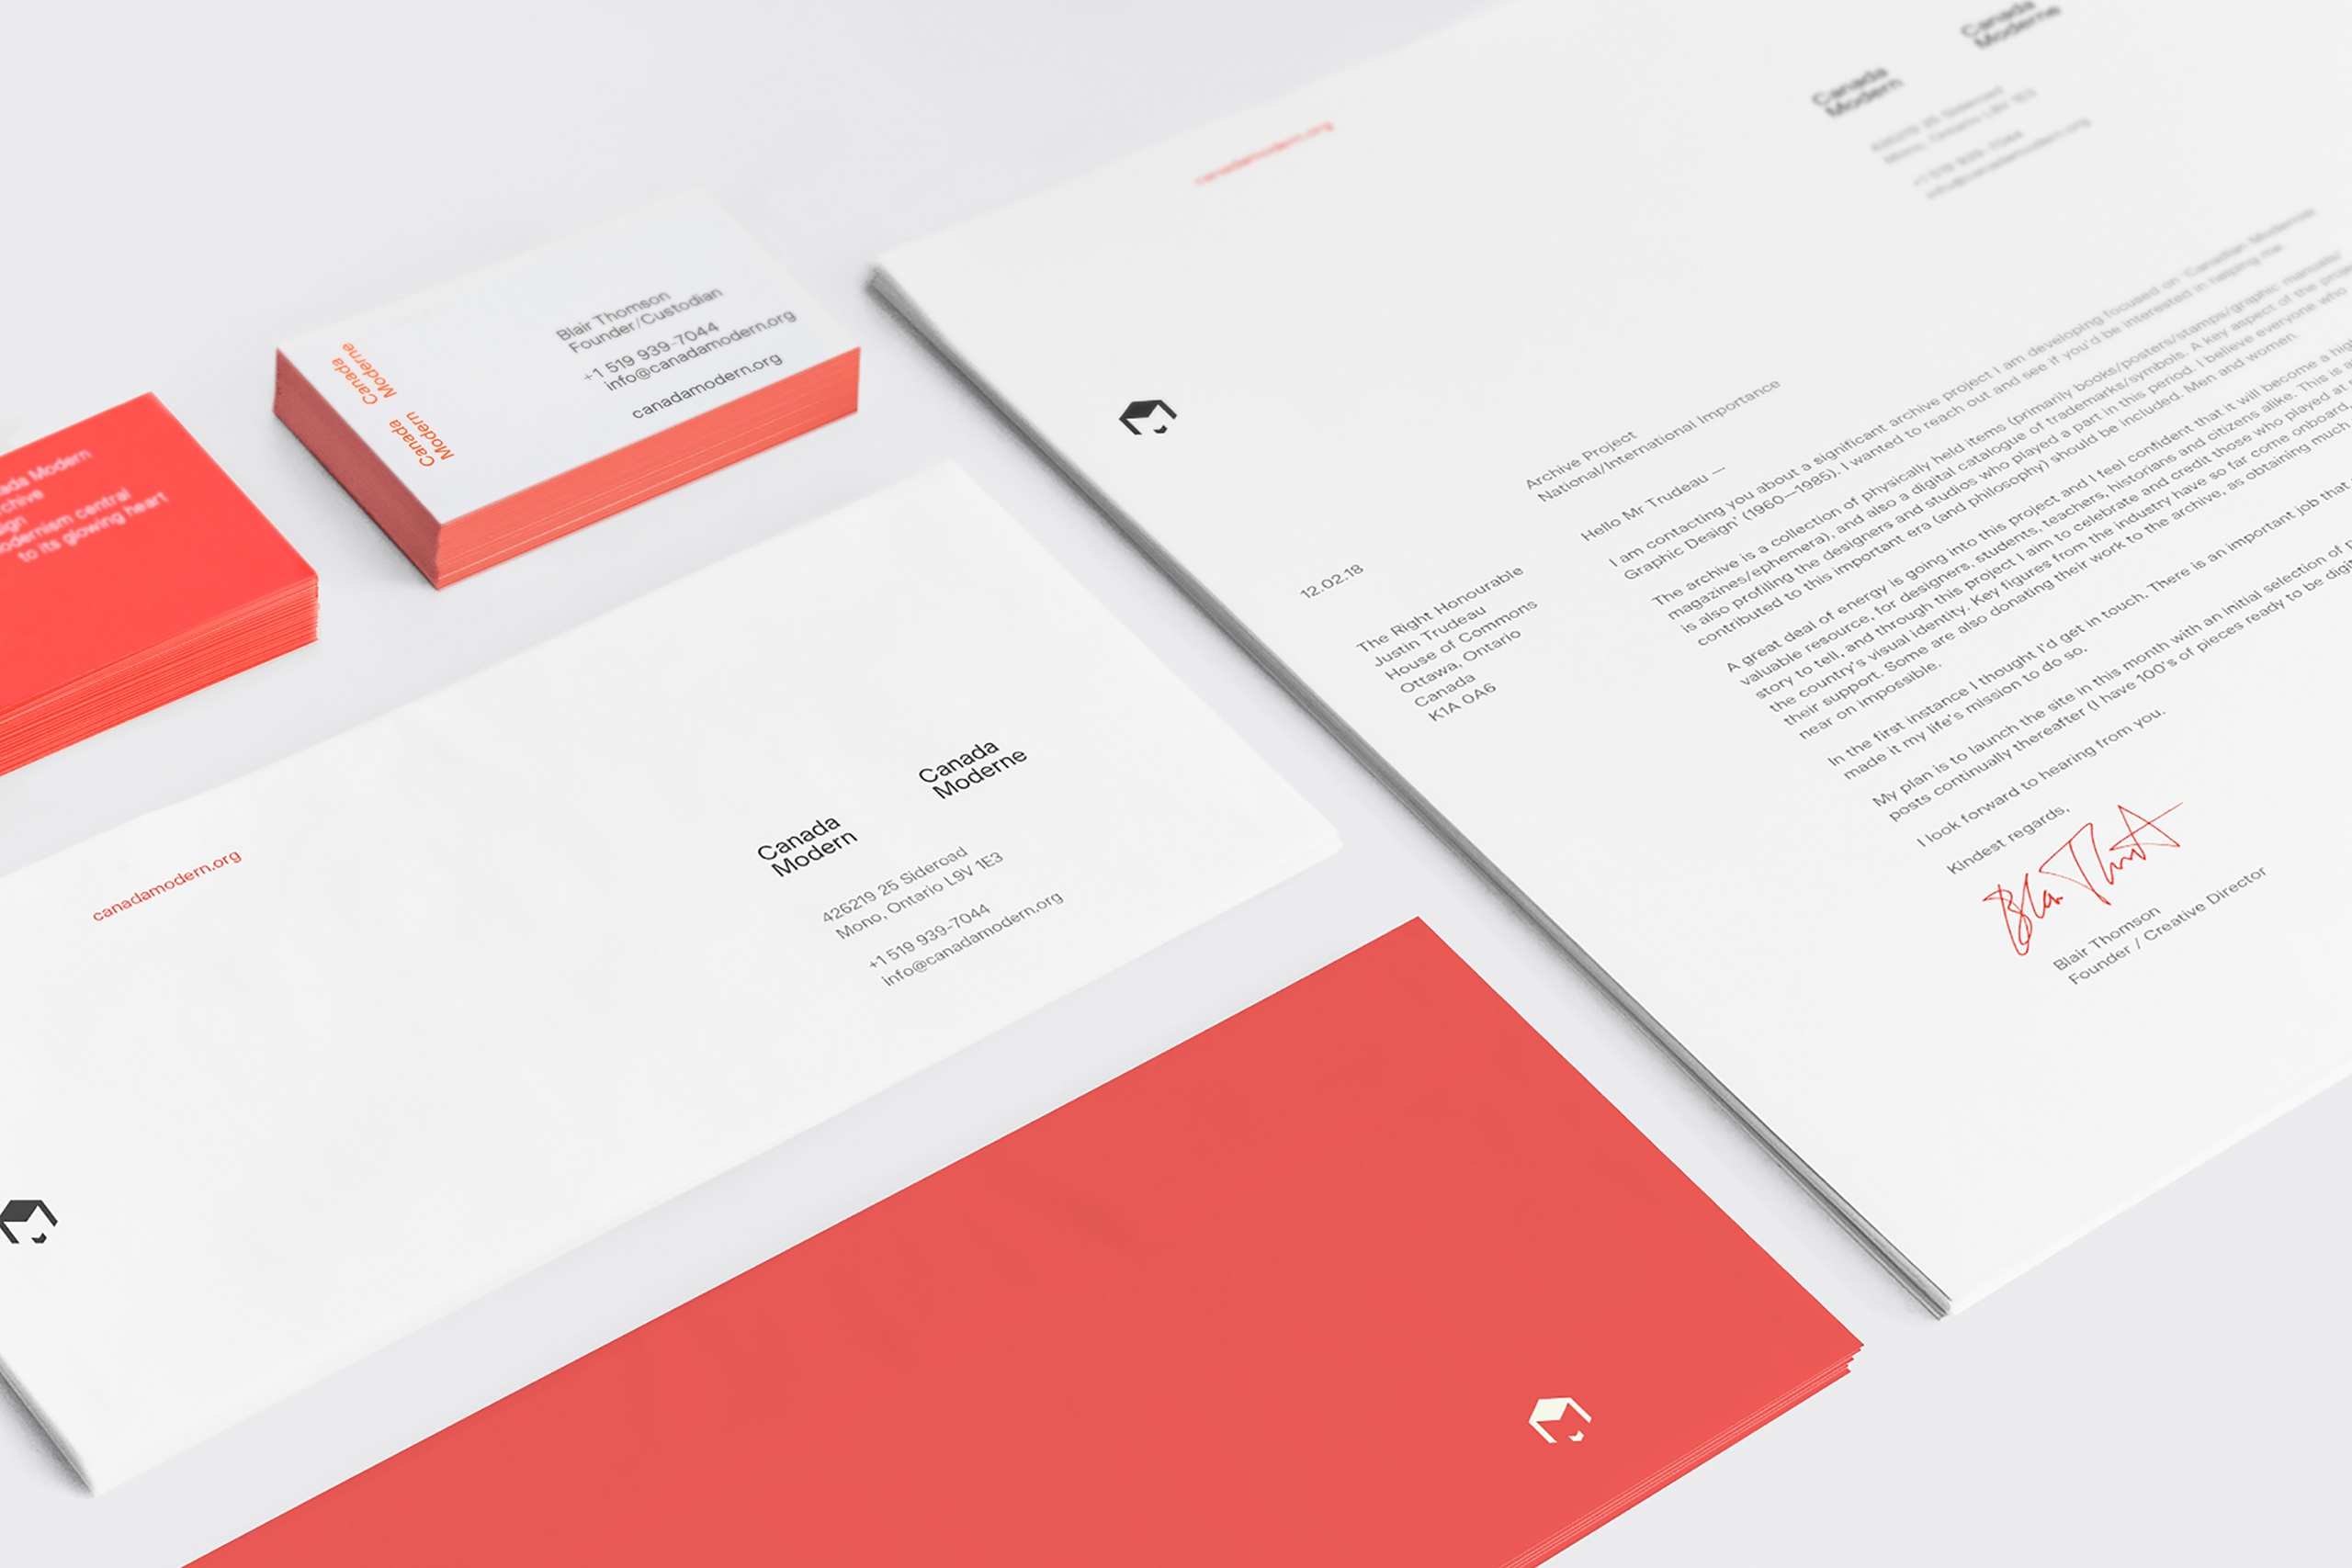 Canada Modern - Identity and website